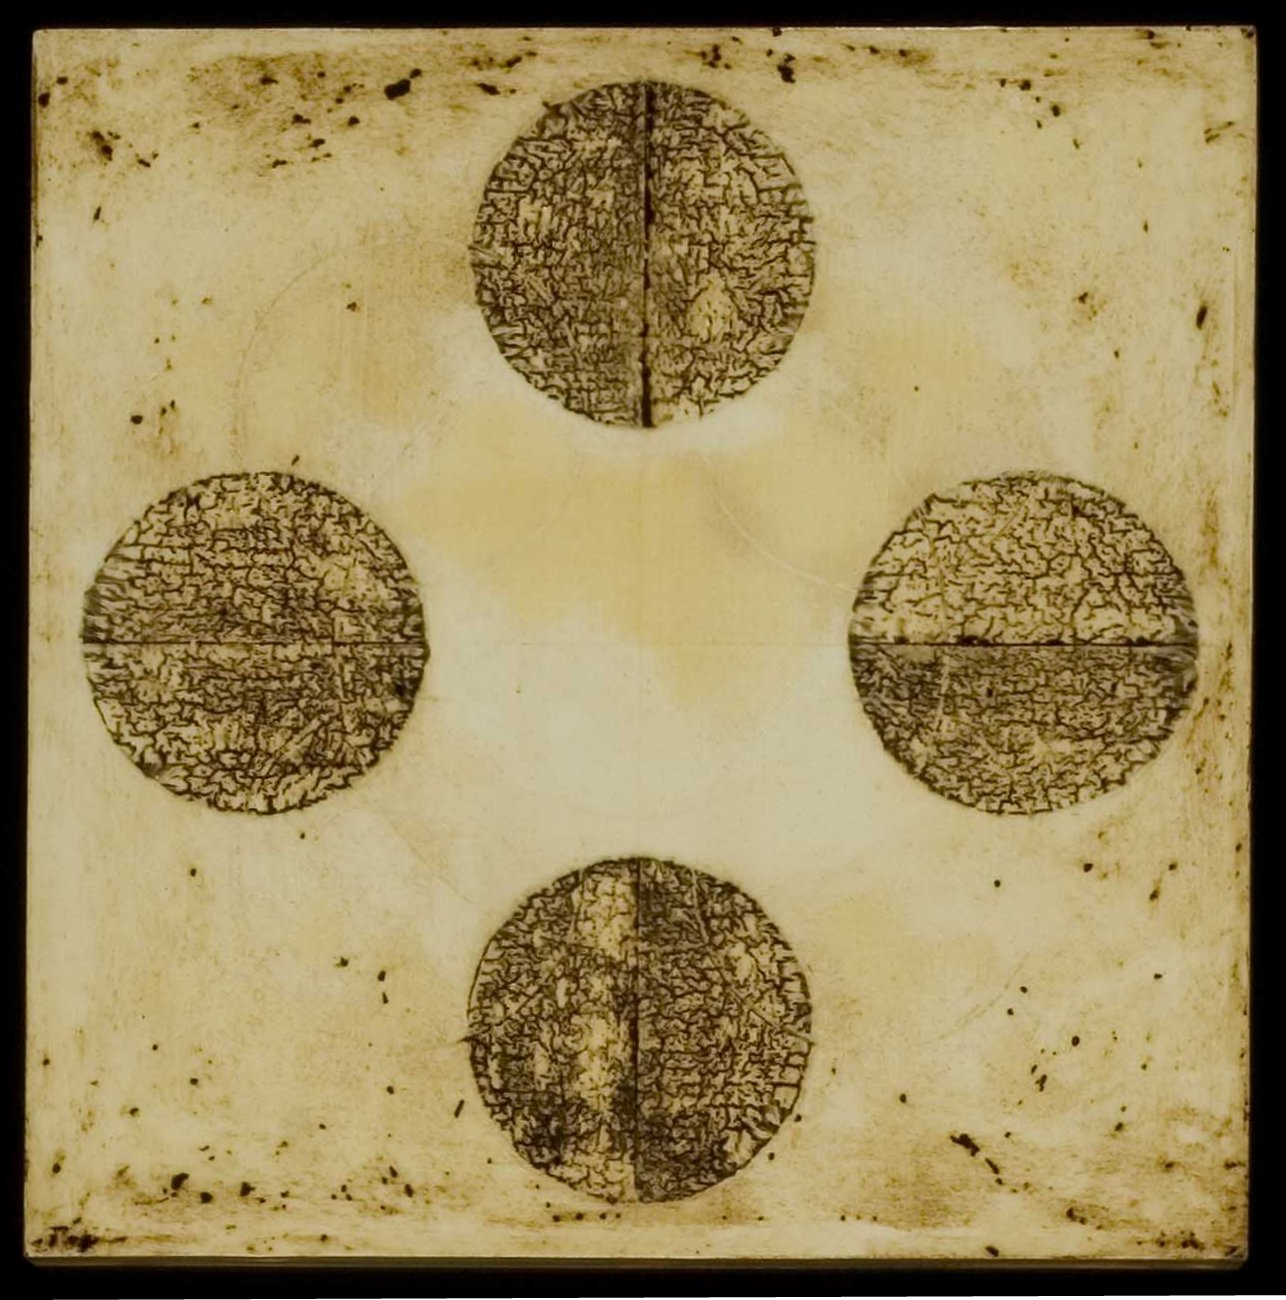 Marco Logsdon. Untitled 1608 a.  Oil, Tar, Beeswax on Panel. 12 inches square..j